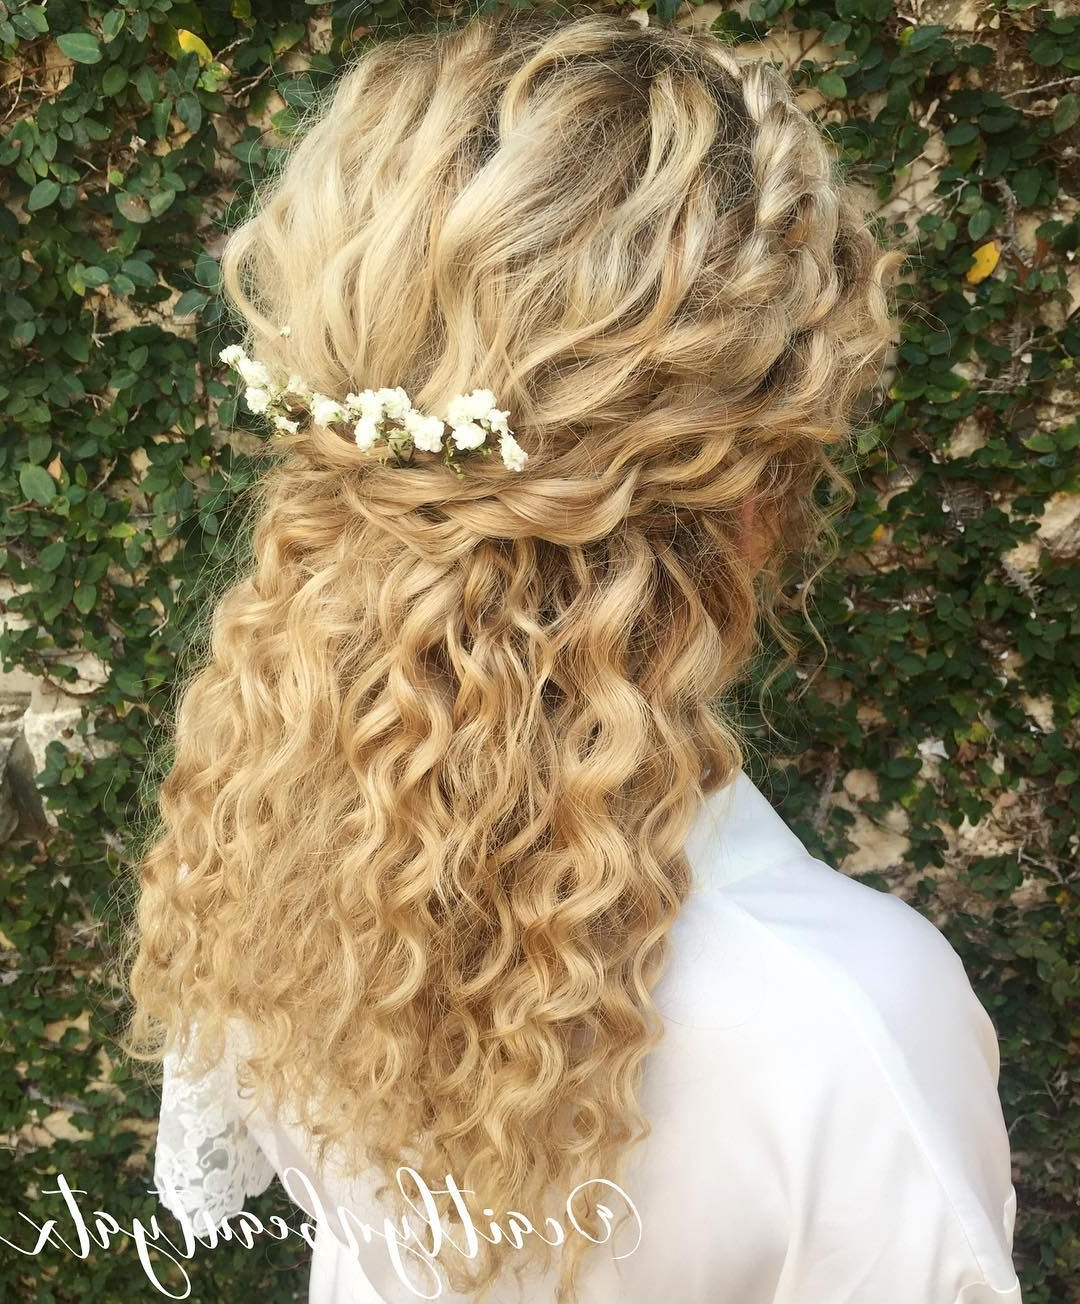 2018 Golden Half Up Half Down Curls Bridal Hairstyles Intended For Natural Curly Bridal Hair (View 3 of 20)